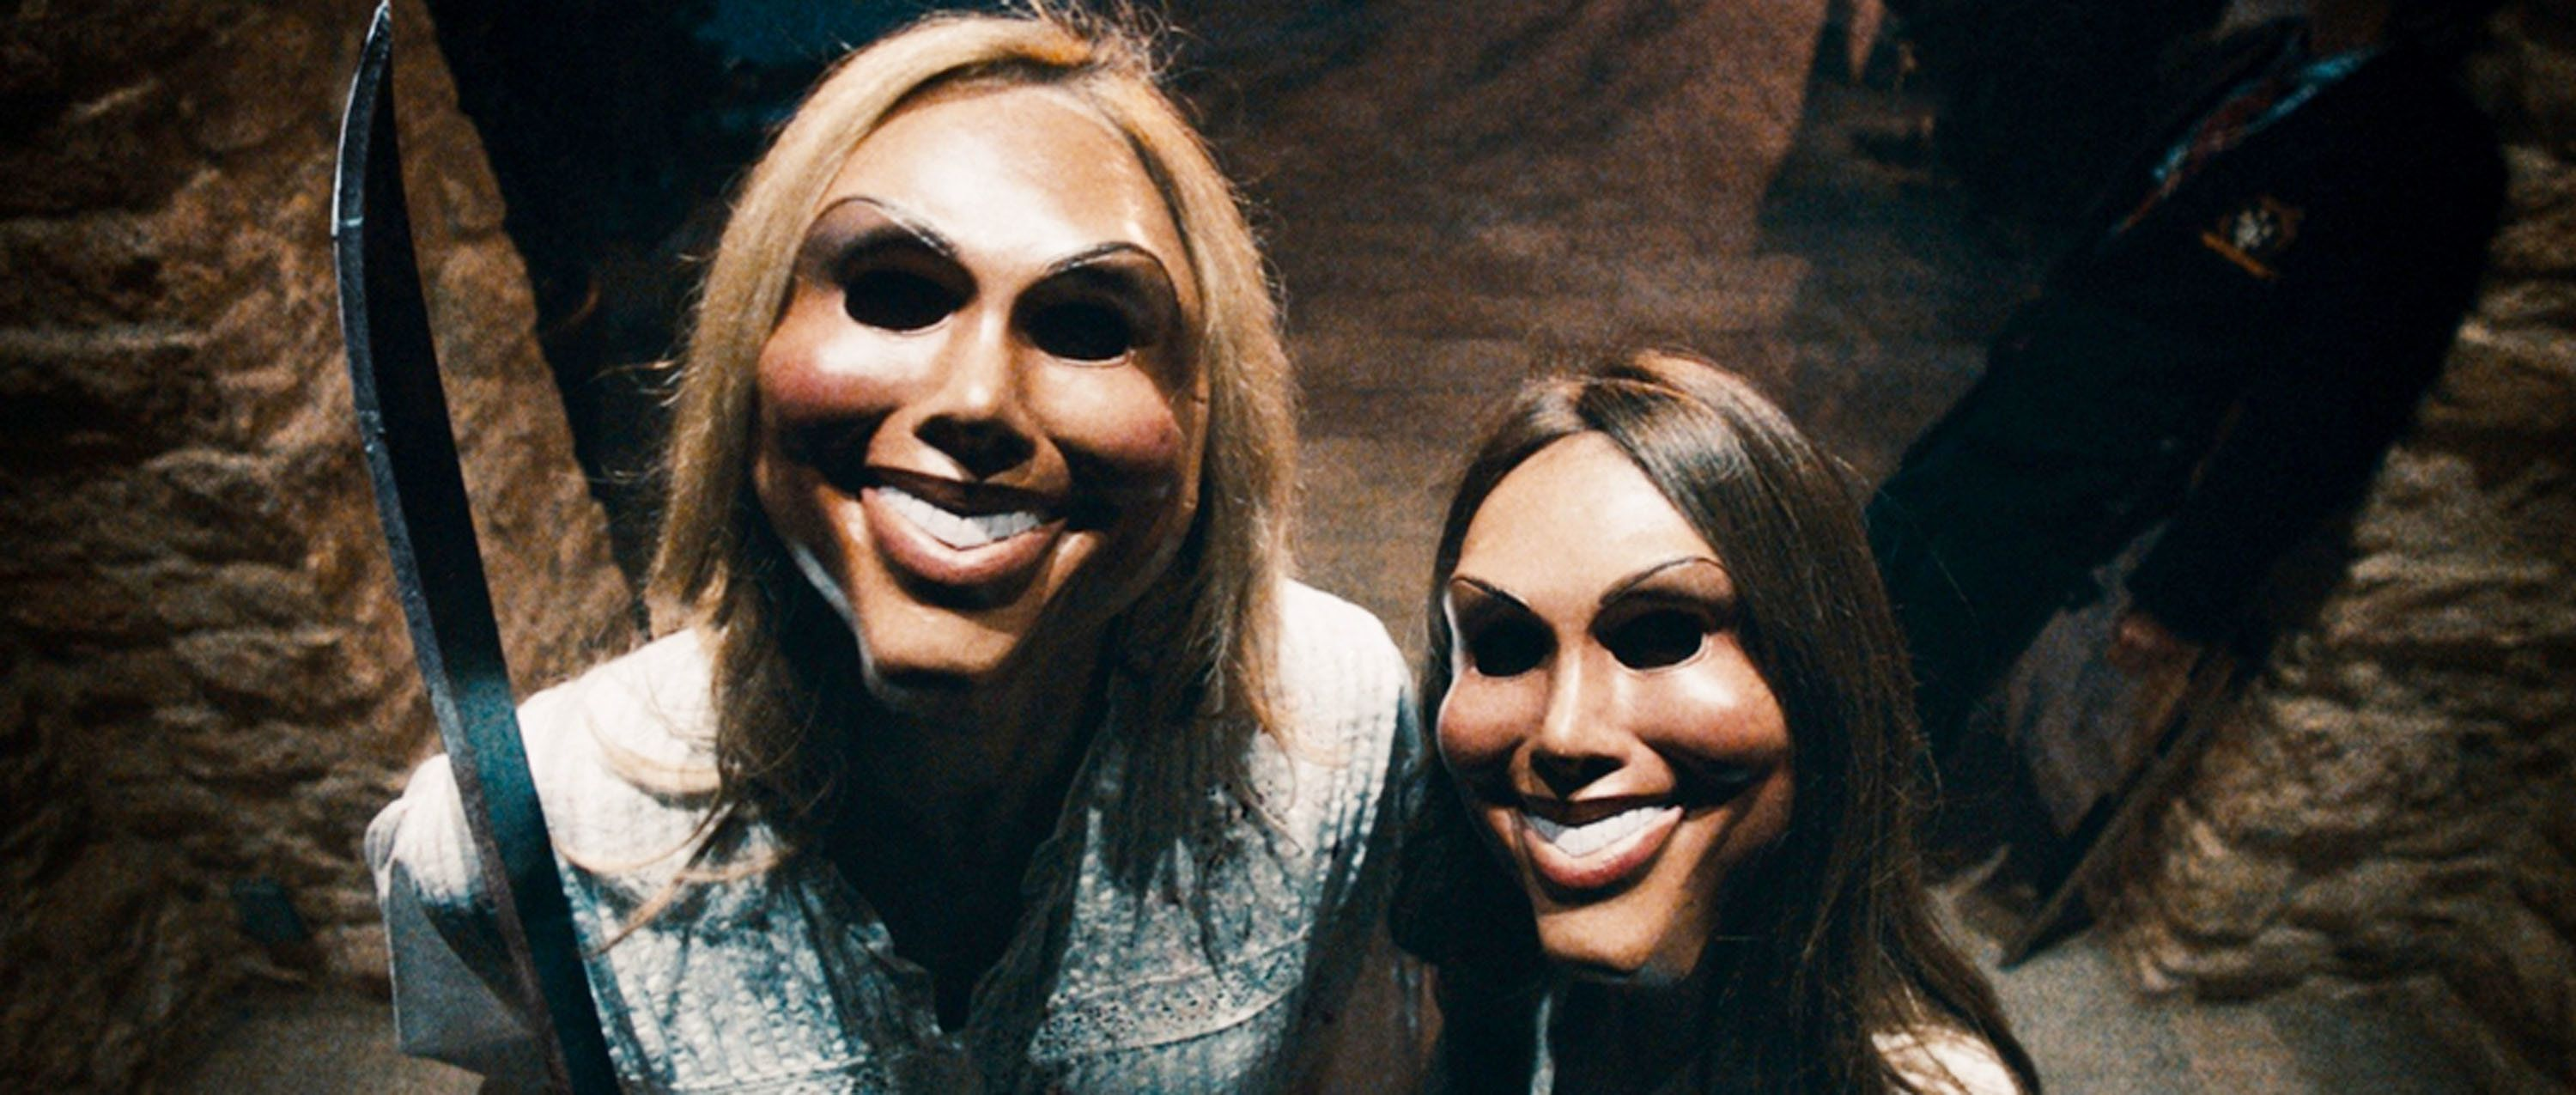 """The Purge"" is a pulpy horror series, but it captures and critiques this dangerous moment better than the classic"